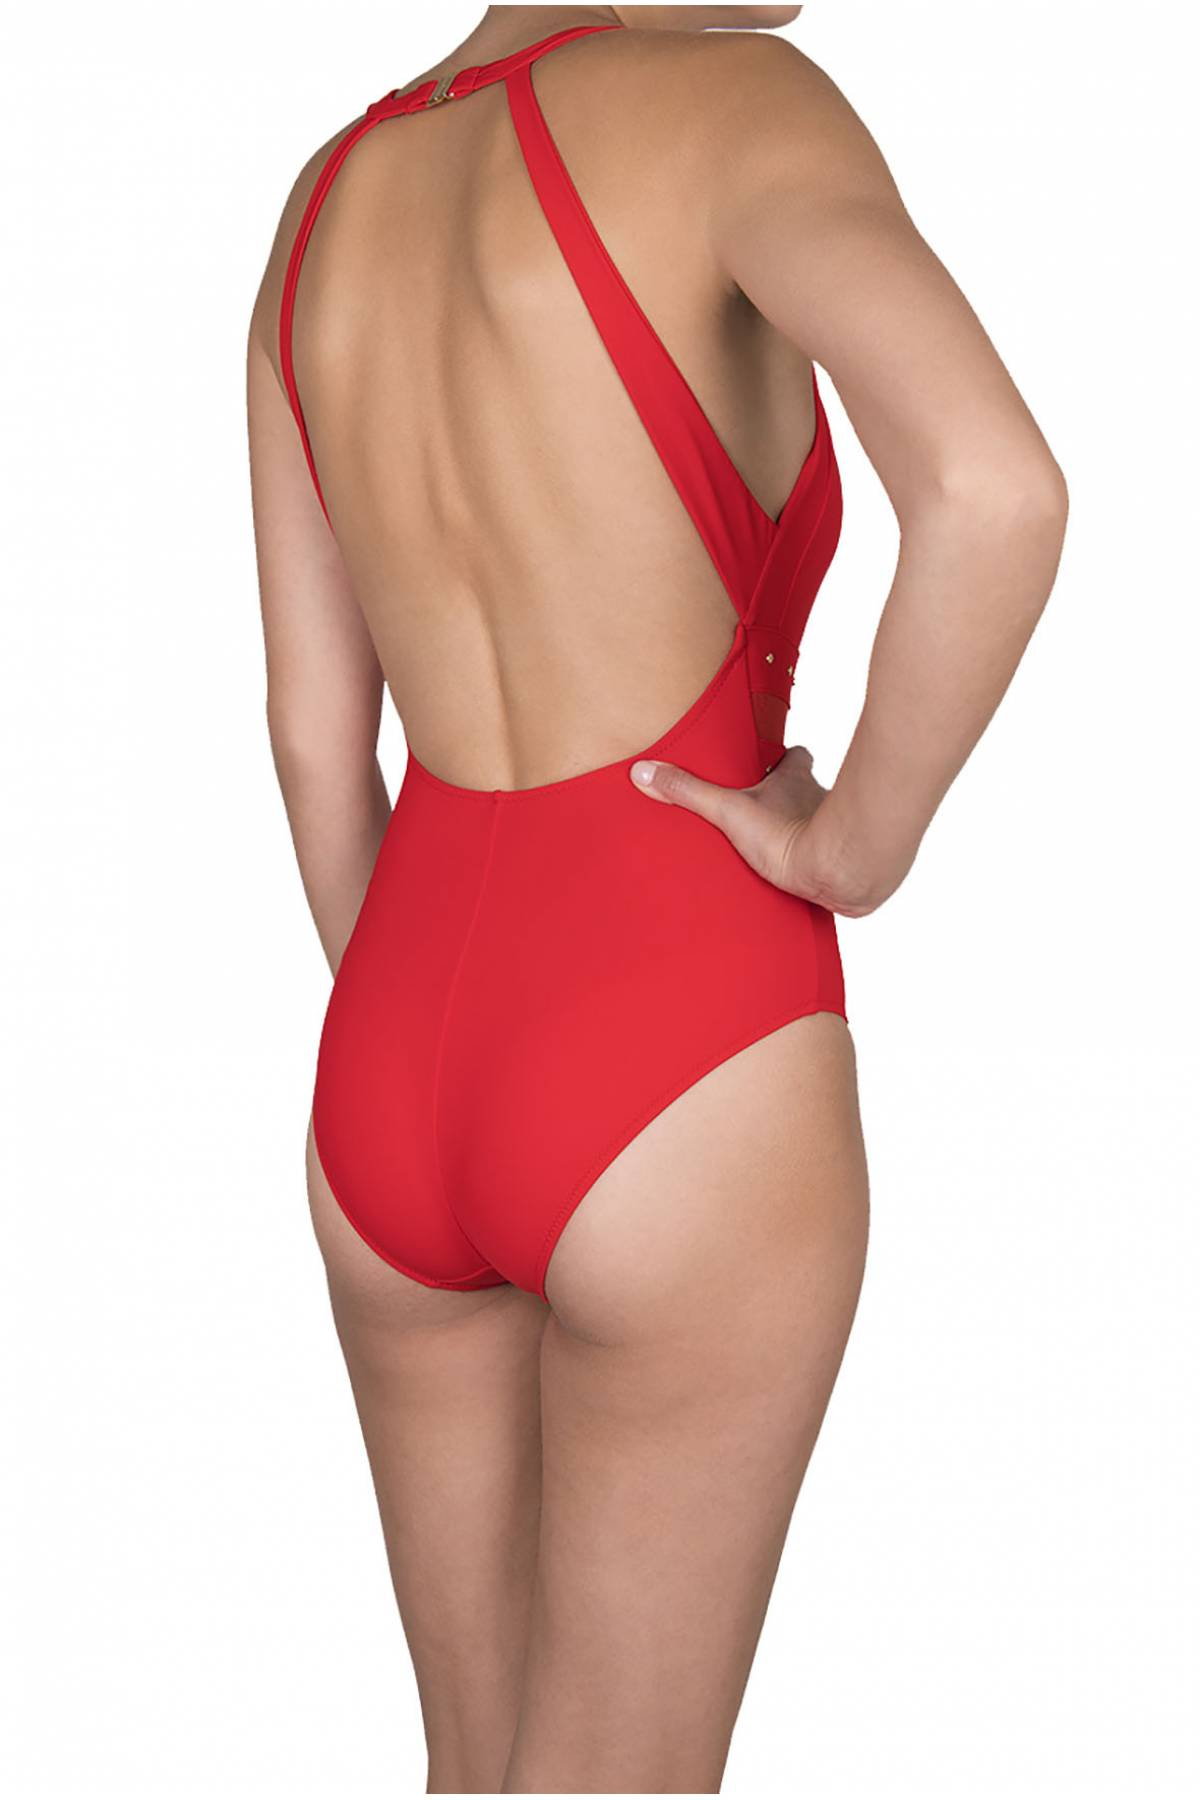 Shan So Sexy High neck open back one piece